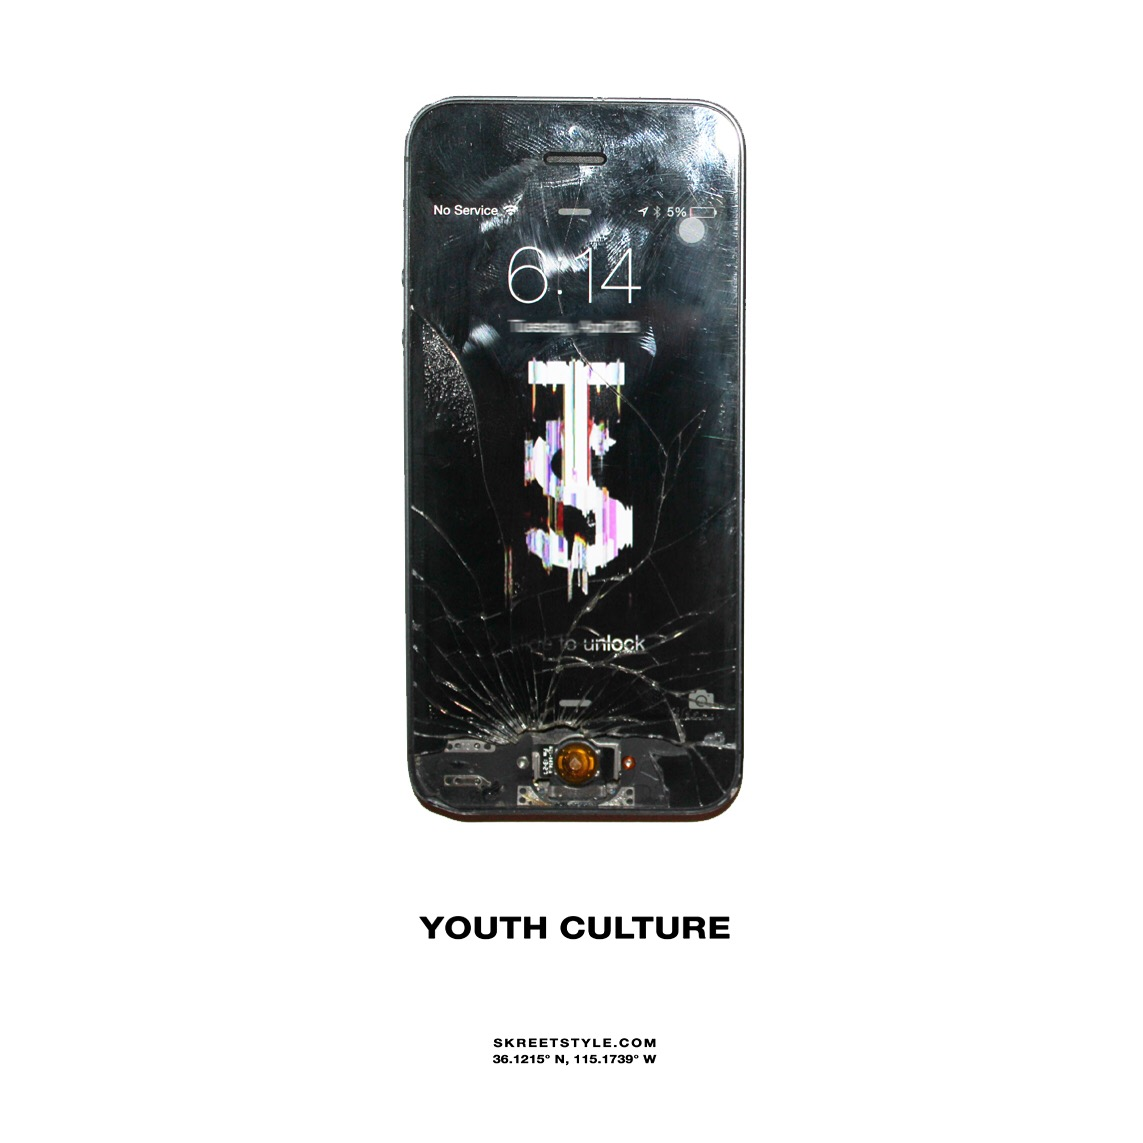 youth+culture+campaign